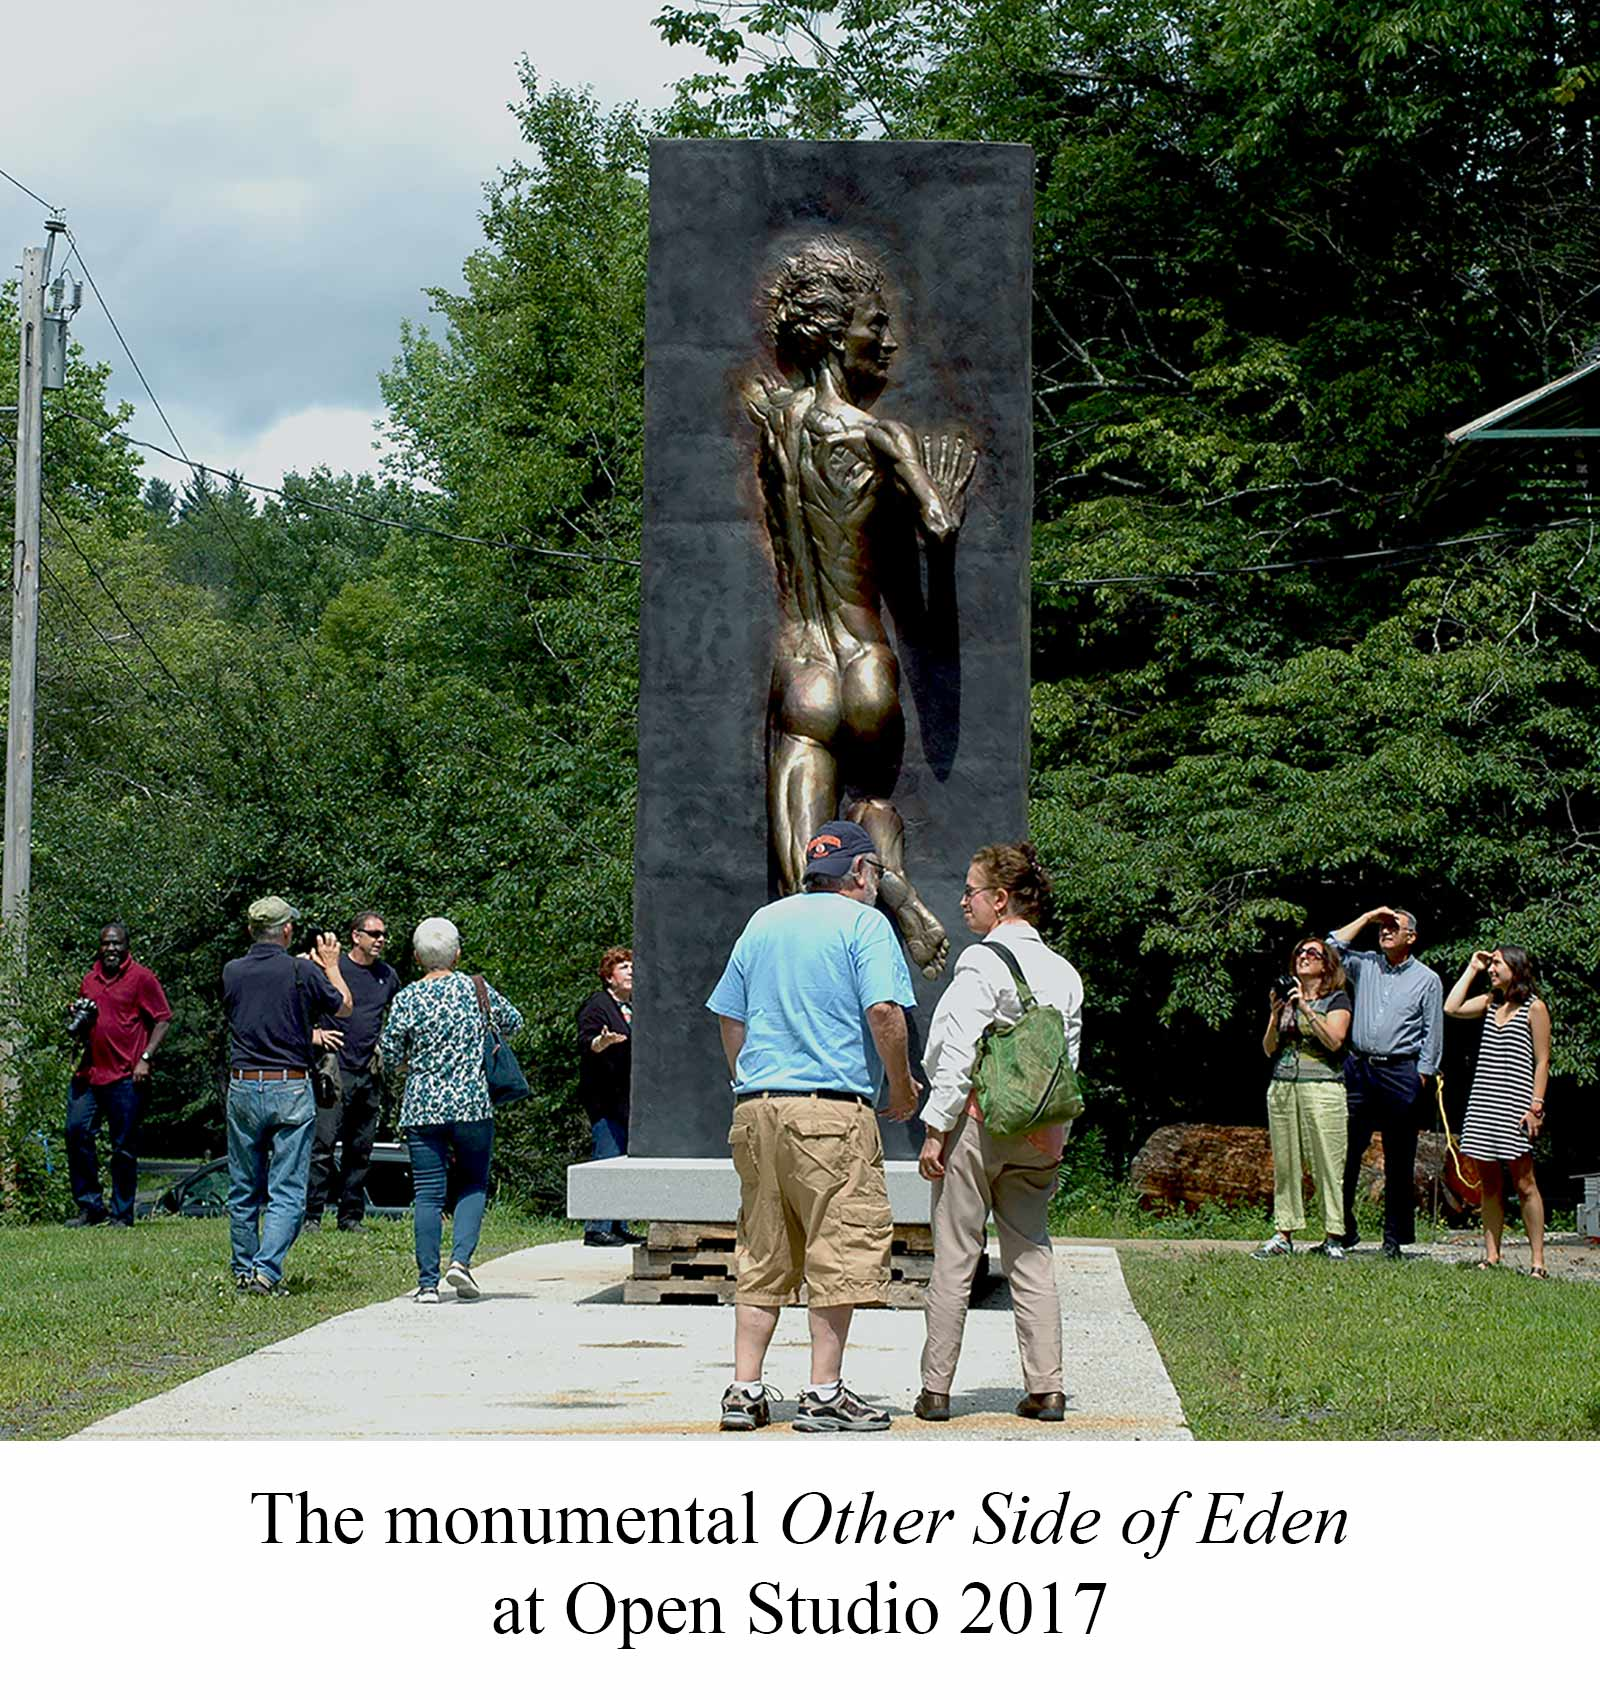 The Other Side of Eden a monumental fifteen foot bronze sculpture created, cast and finished by Andrew DeVries. Copyright 2016.